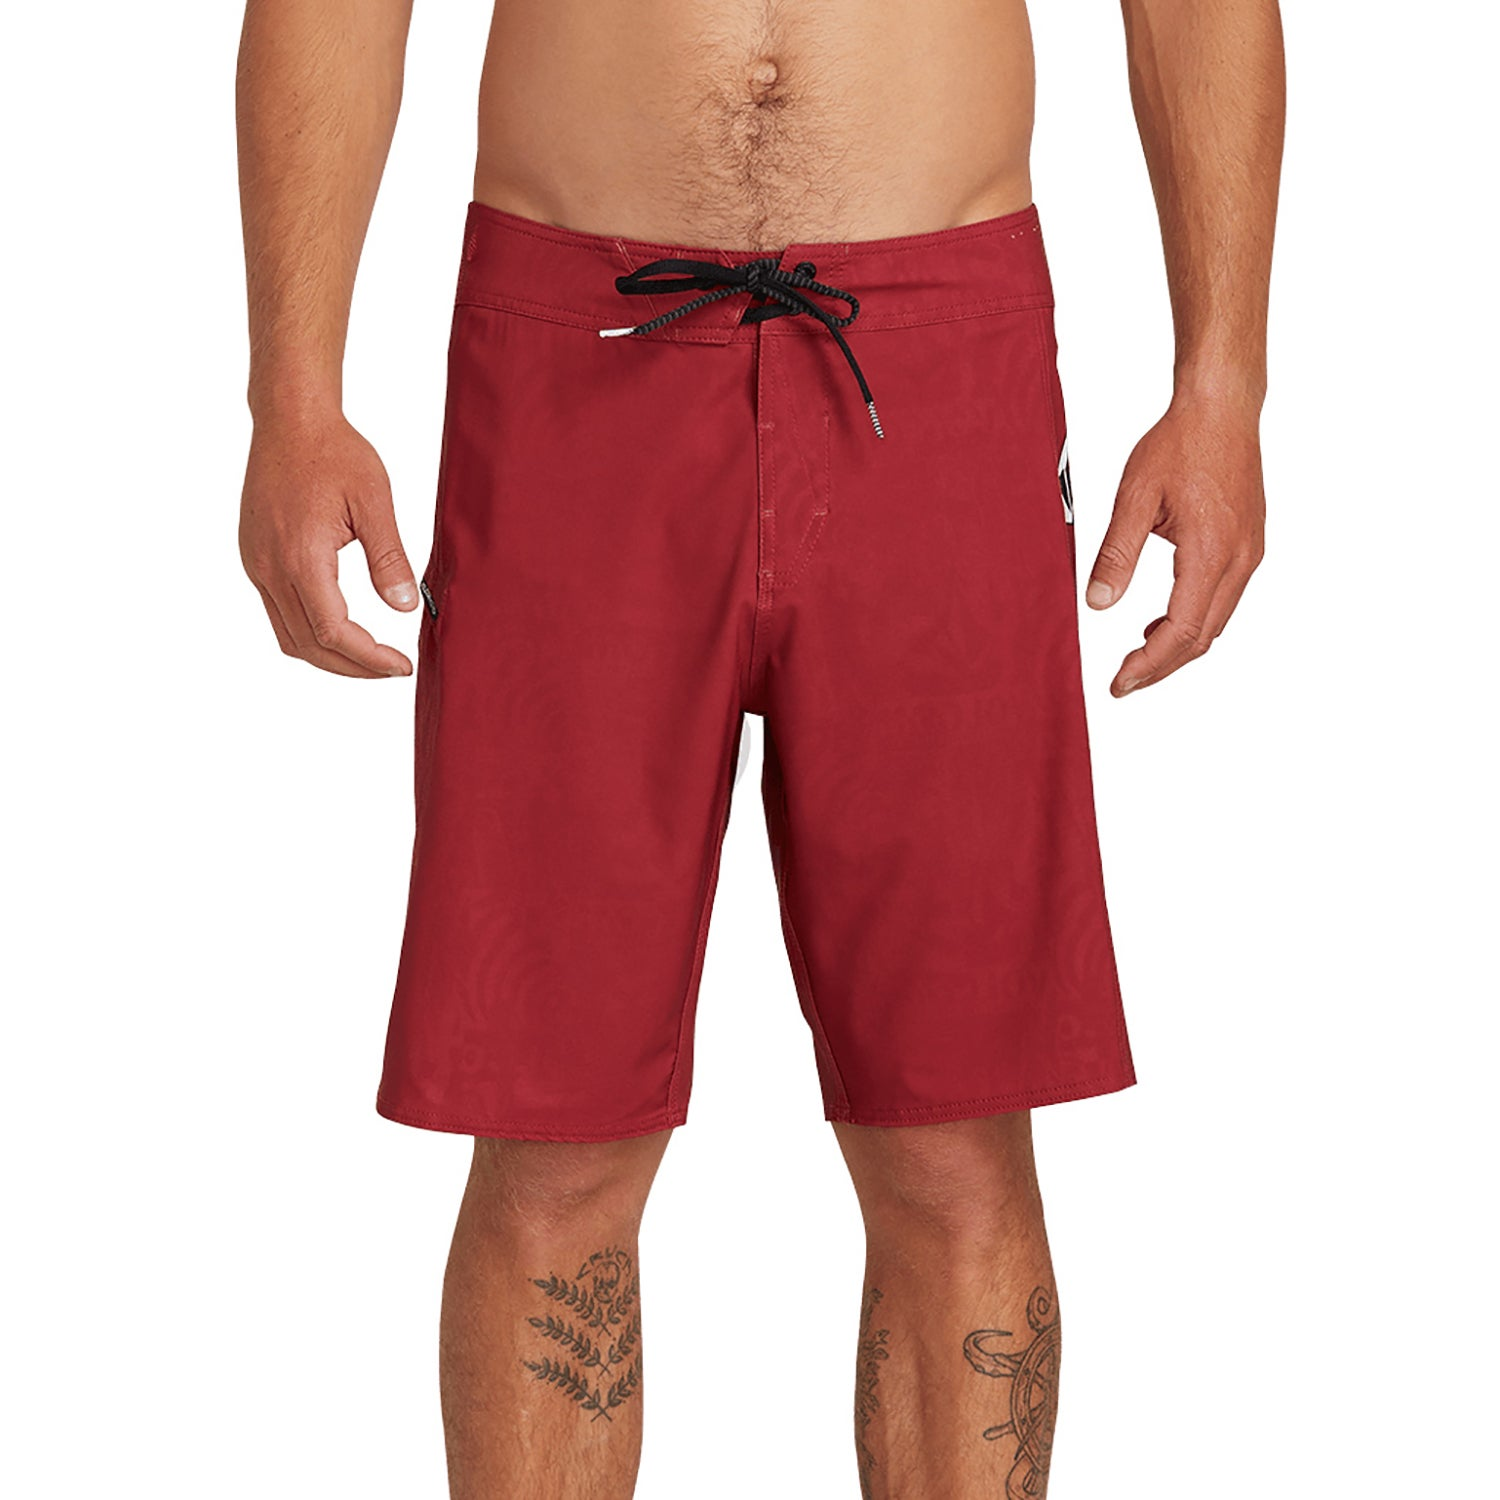 4d4b5a3870 Volcom Deadly Stones 20 inch Board Shorts at Extremepie.com